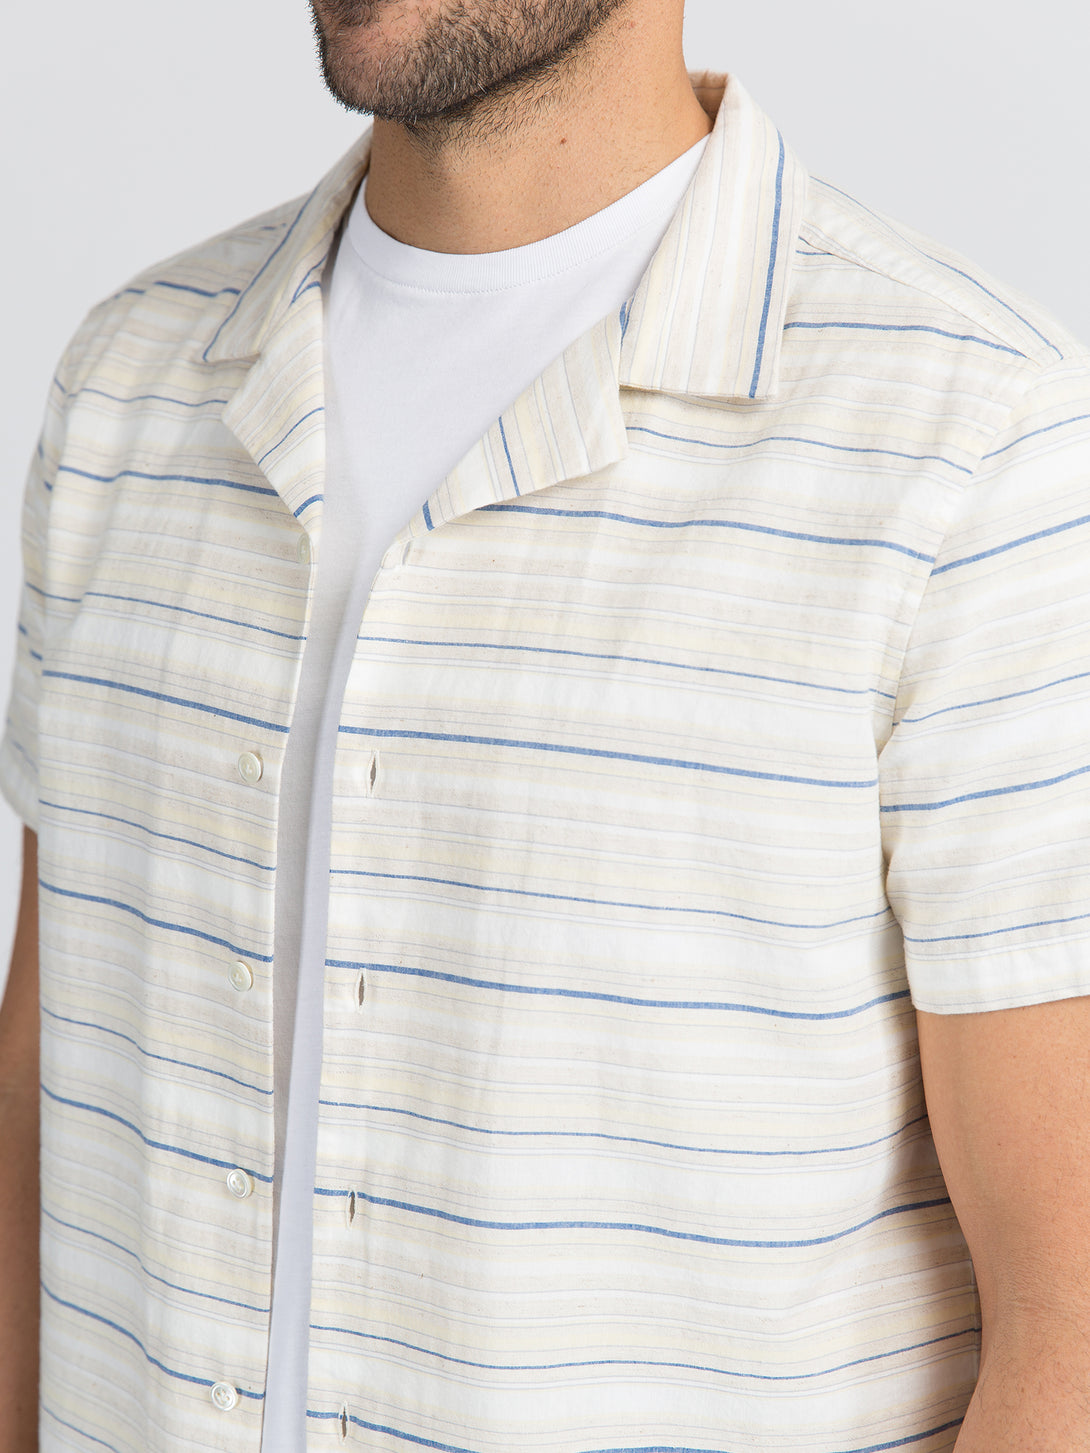 ons garage men's shirt BLUE STRIPE